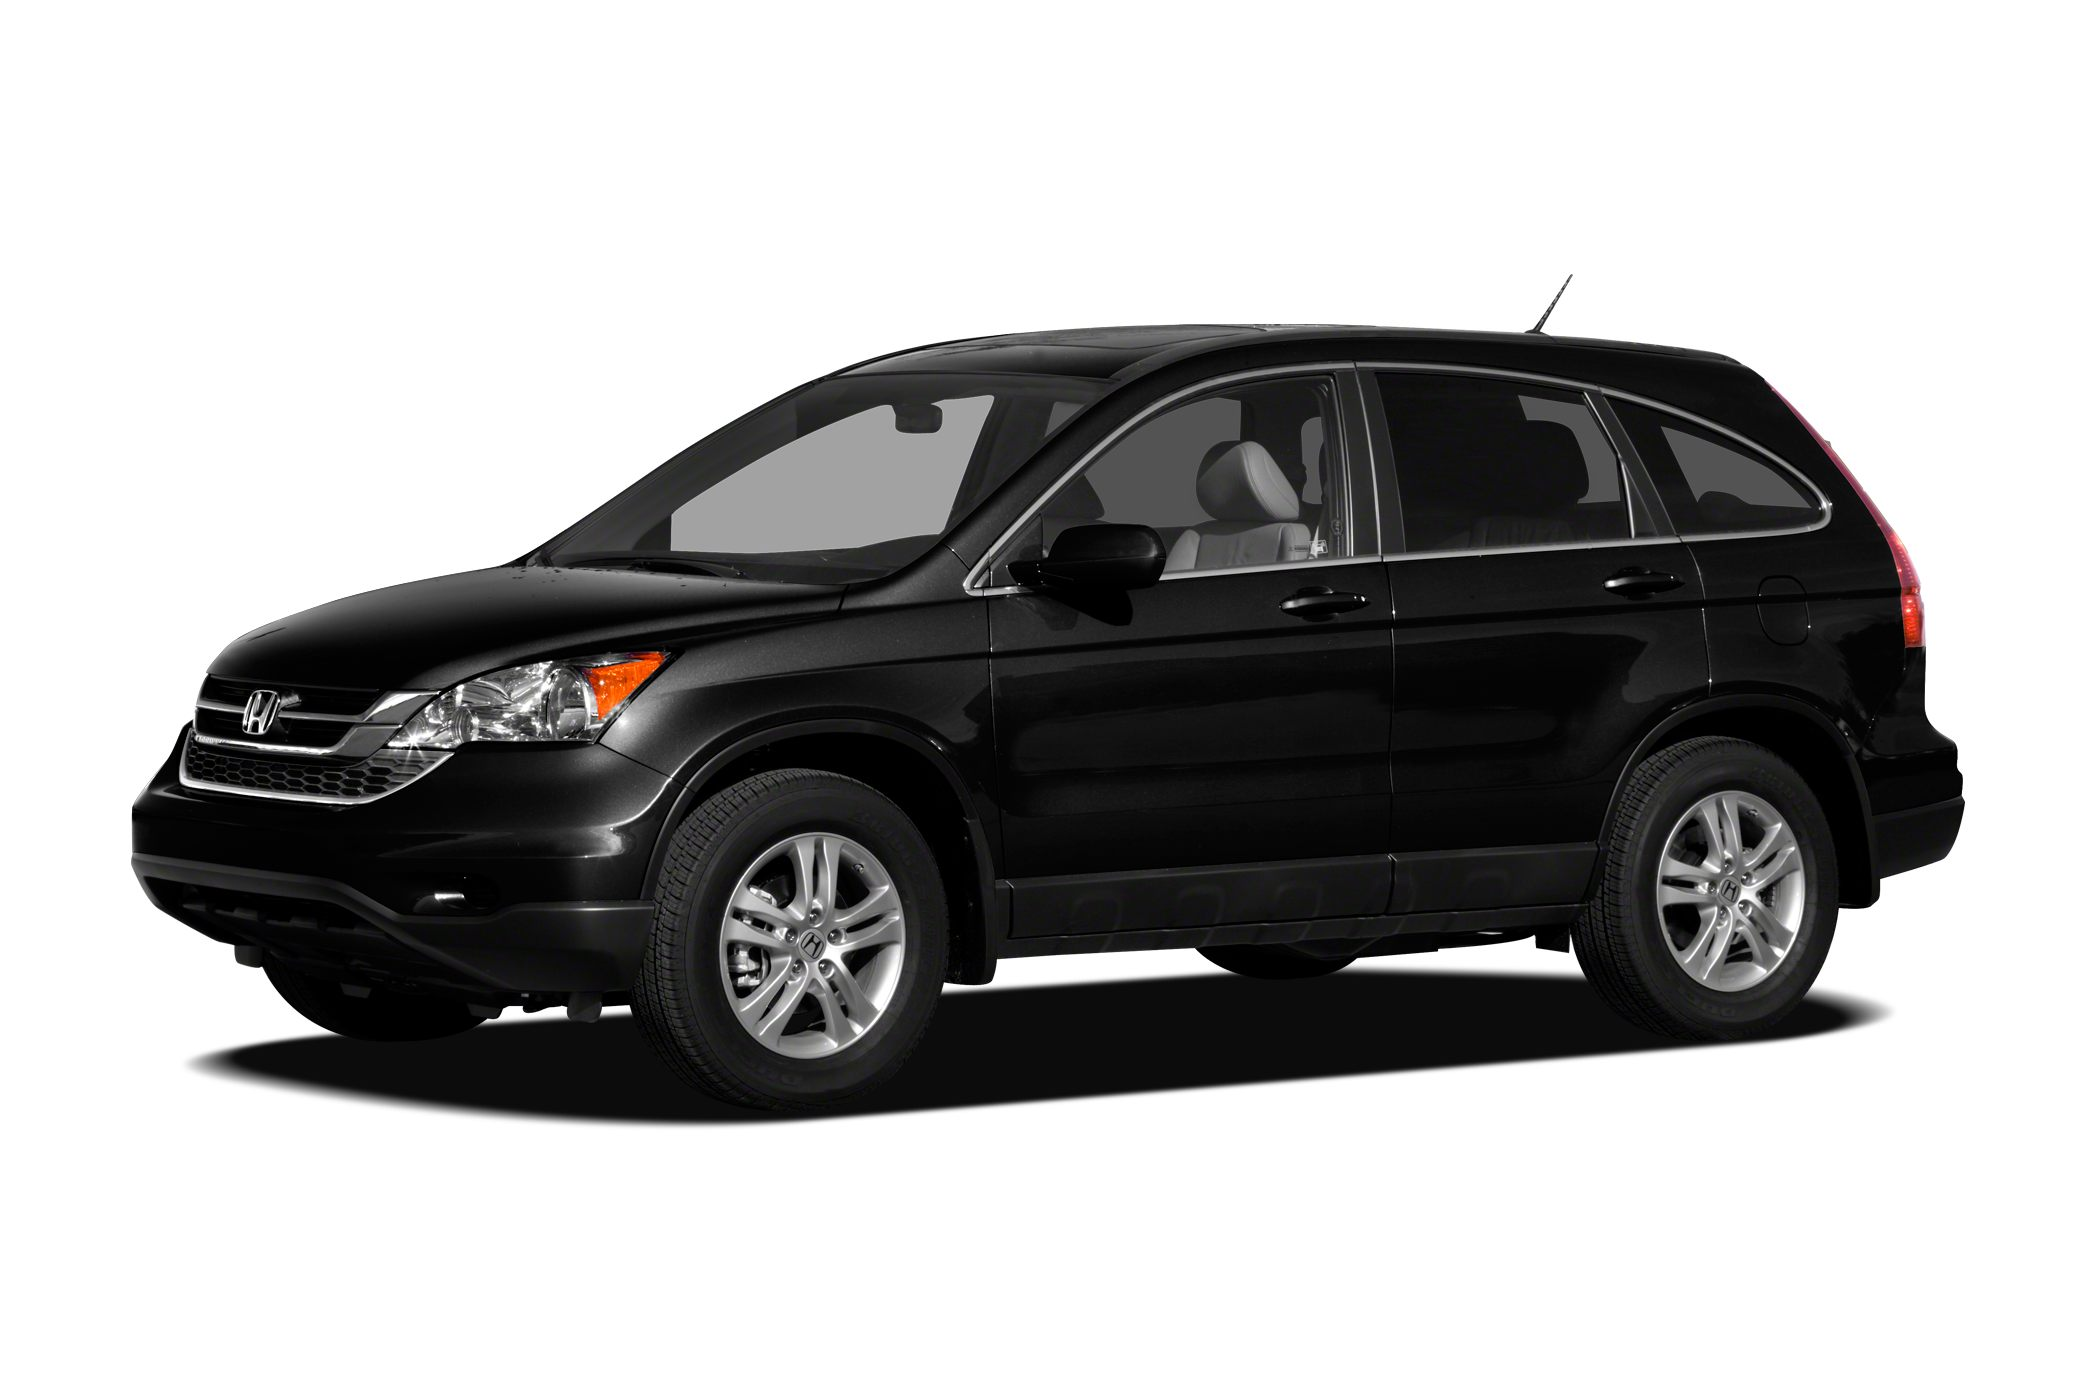 2011 Honda CR-V EX-L SUV for sale in Biddeford for $23,995 with 40,926 miles.